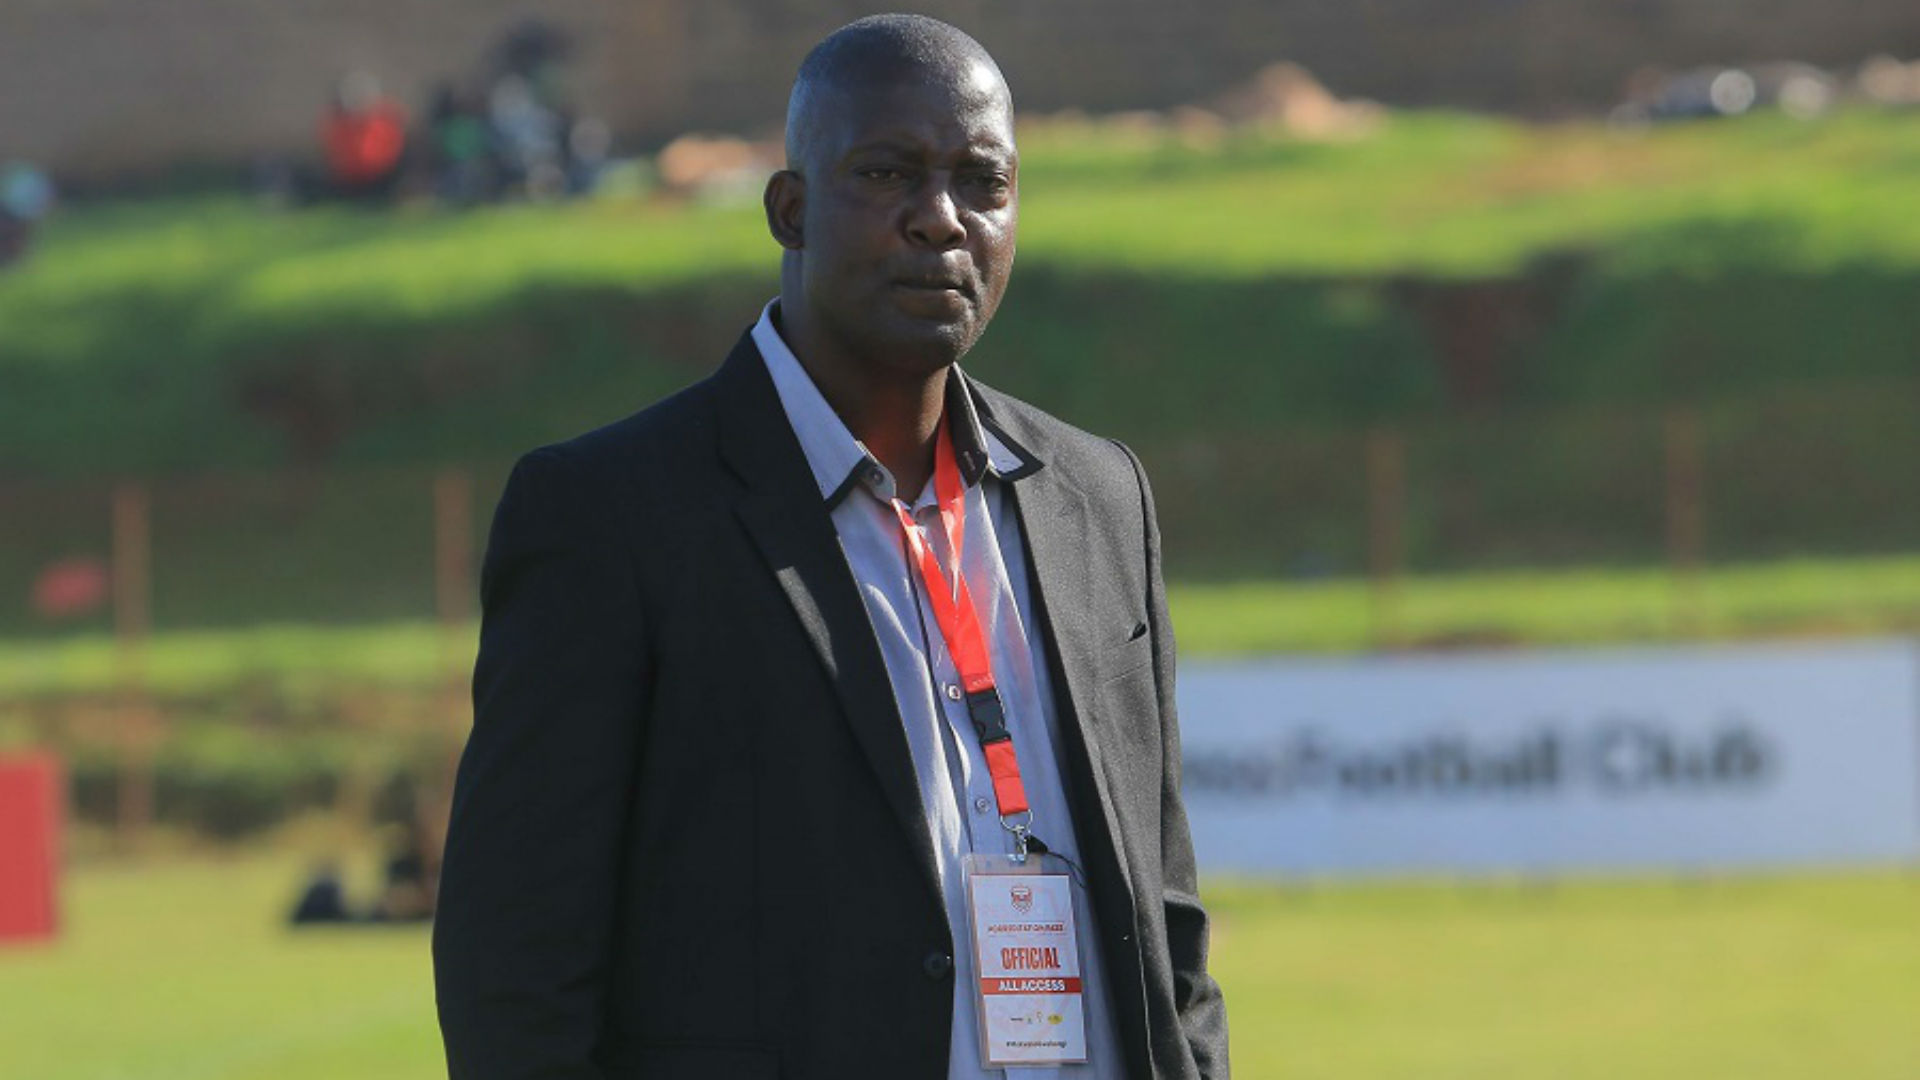 Bbosa: Express FC target is to keep winning run going against Mbarara City